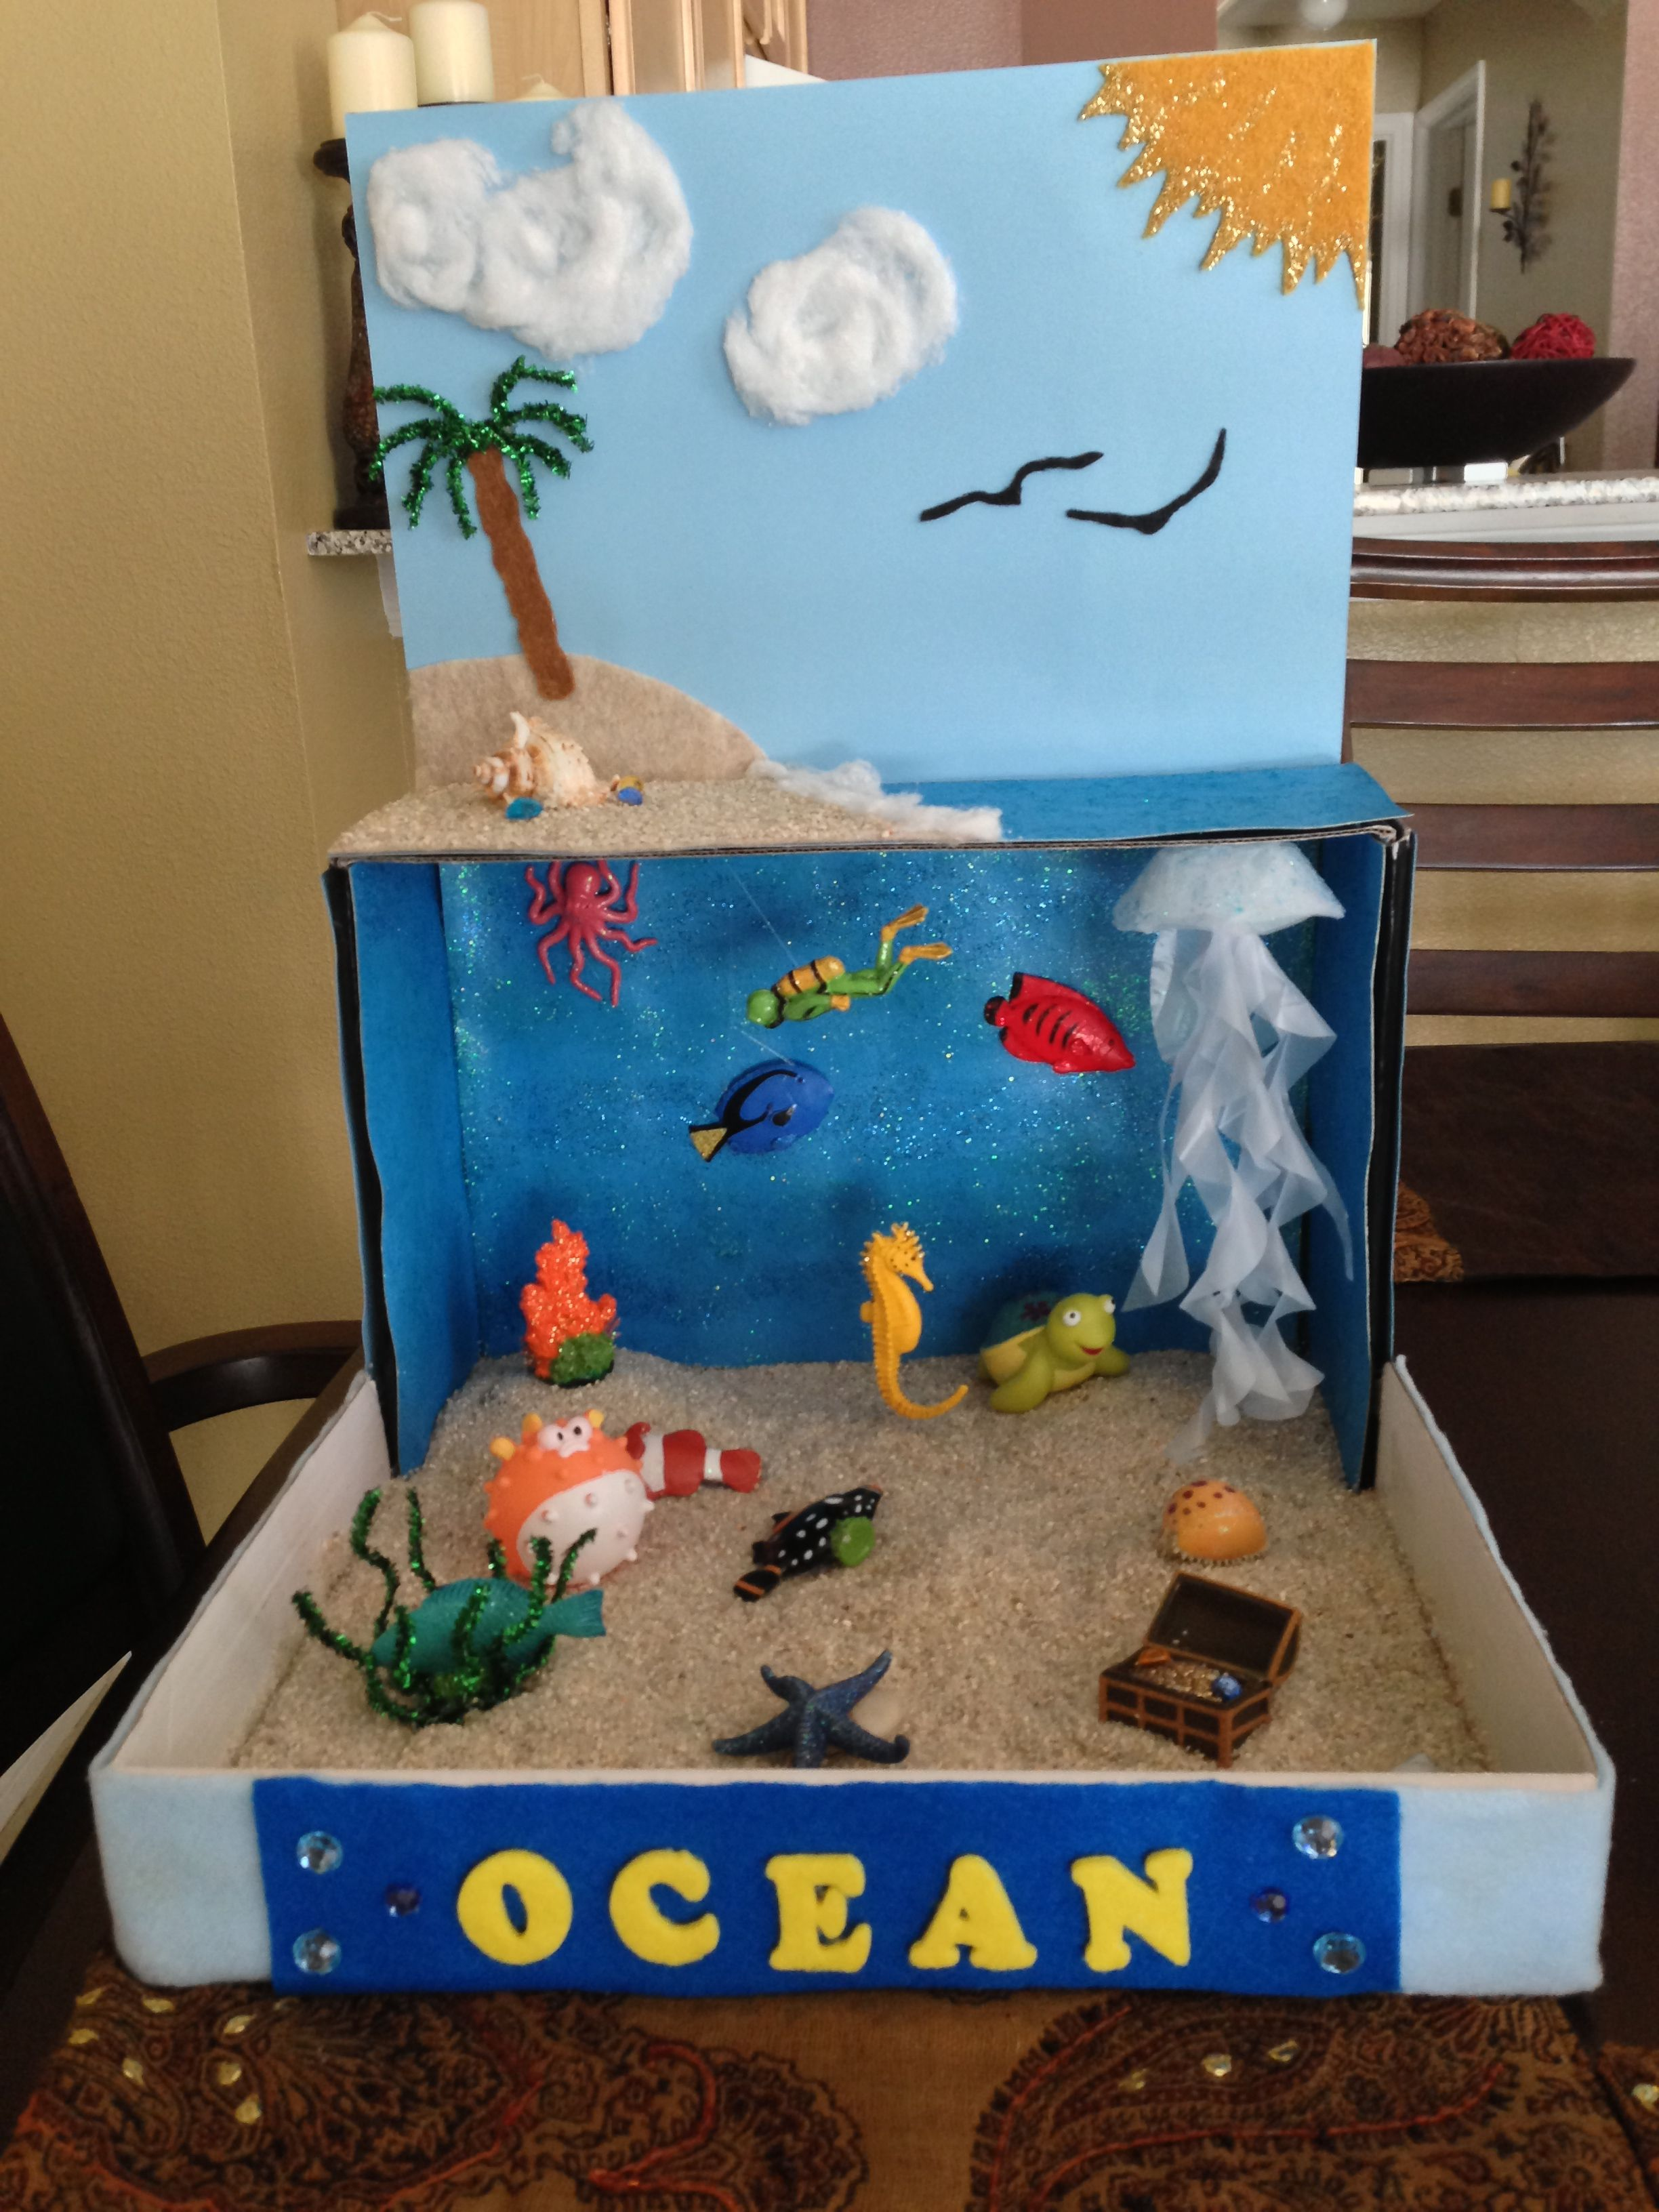 Ocean Diorama For School Project Idea For Henry 2nd Grade Project Remember To Use Those Extra